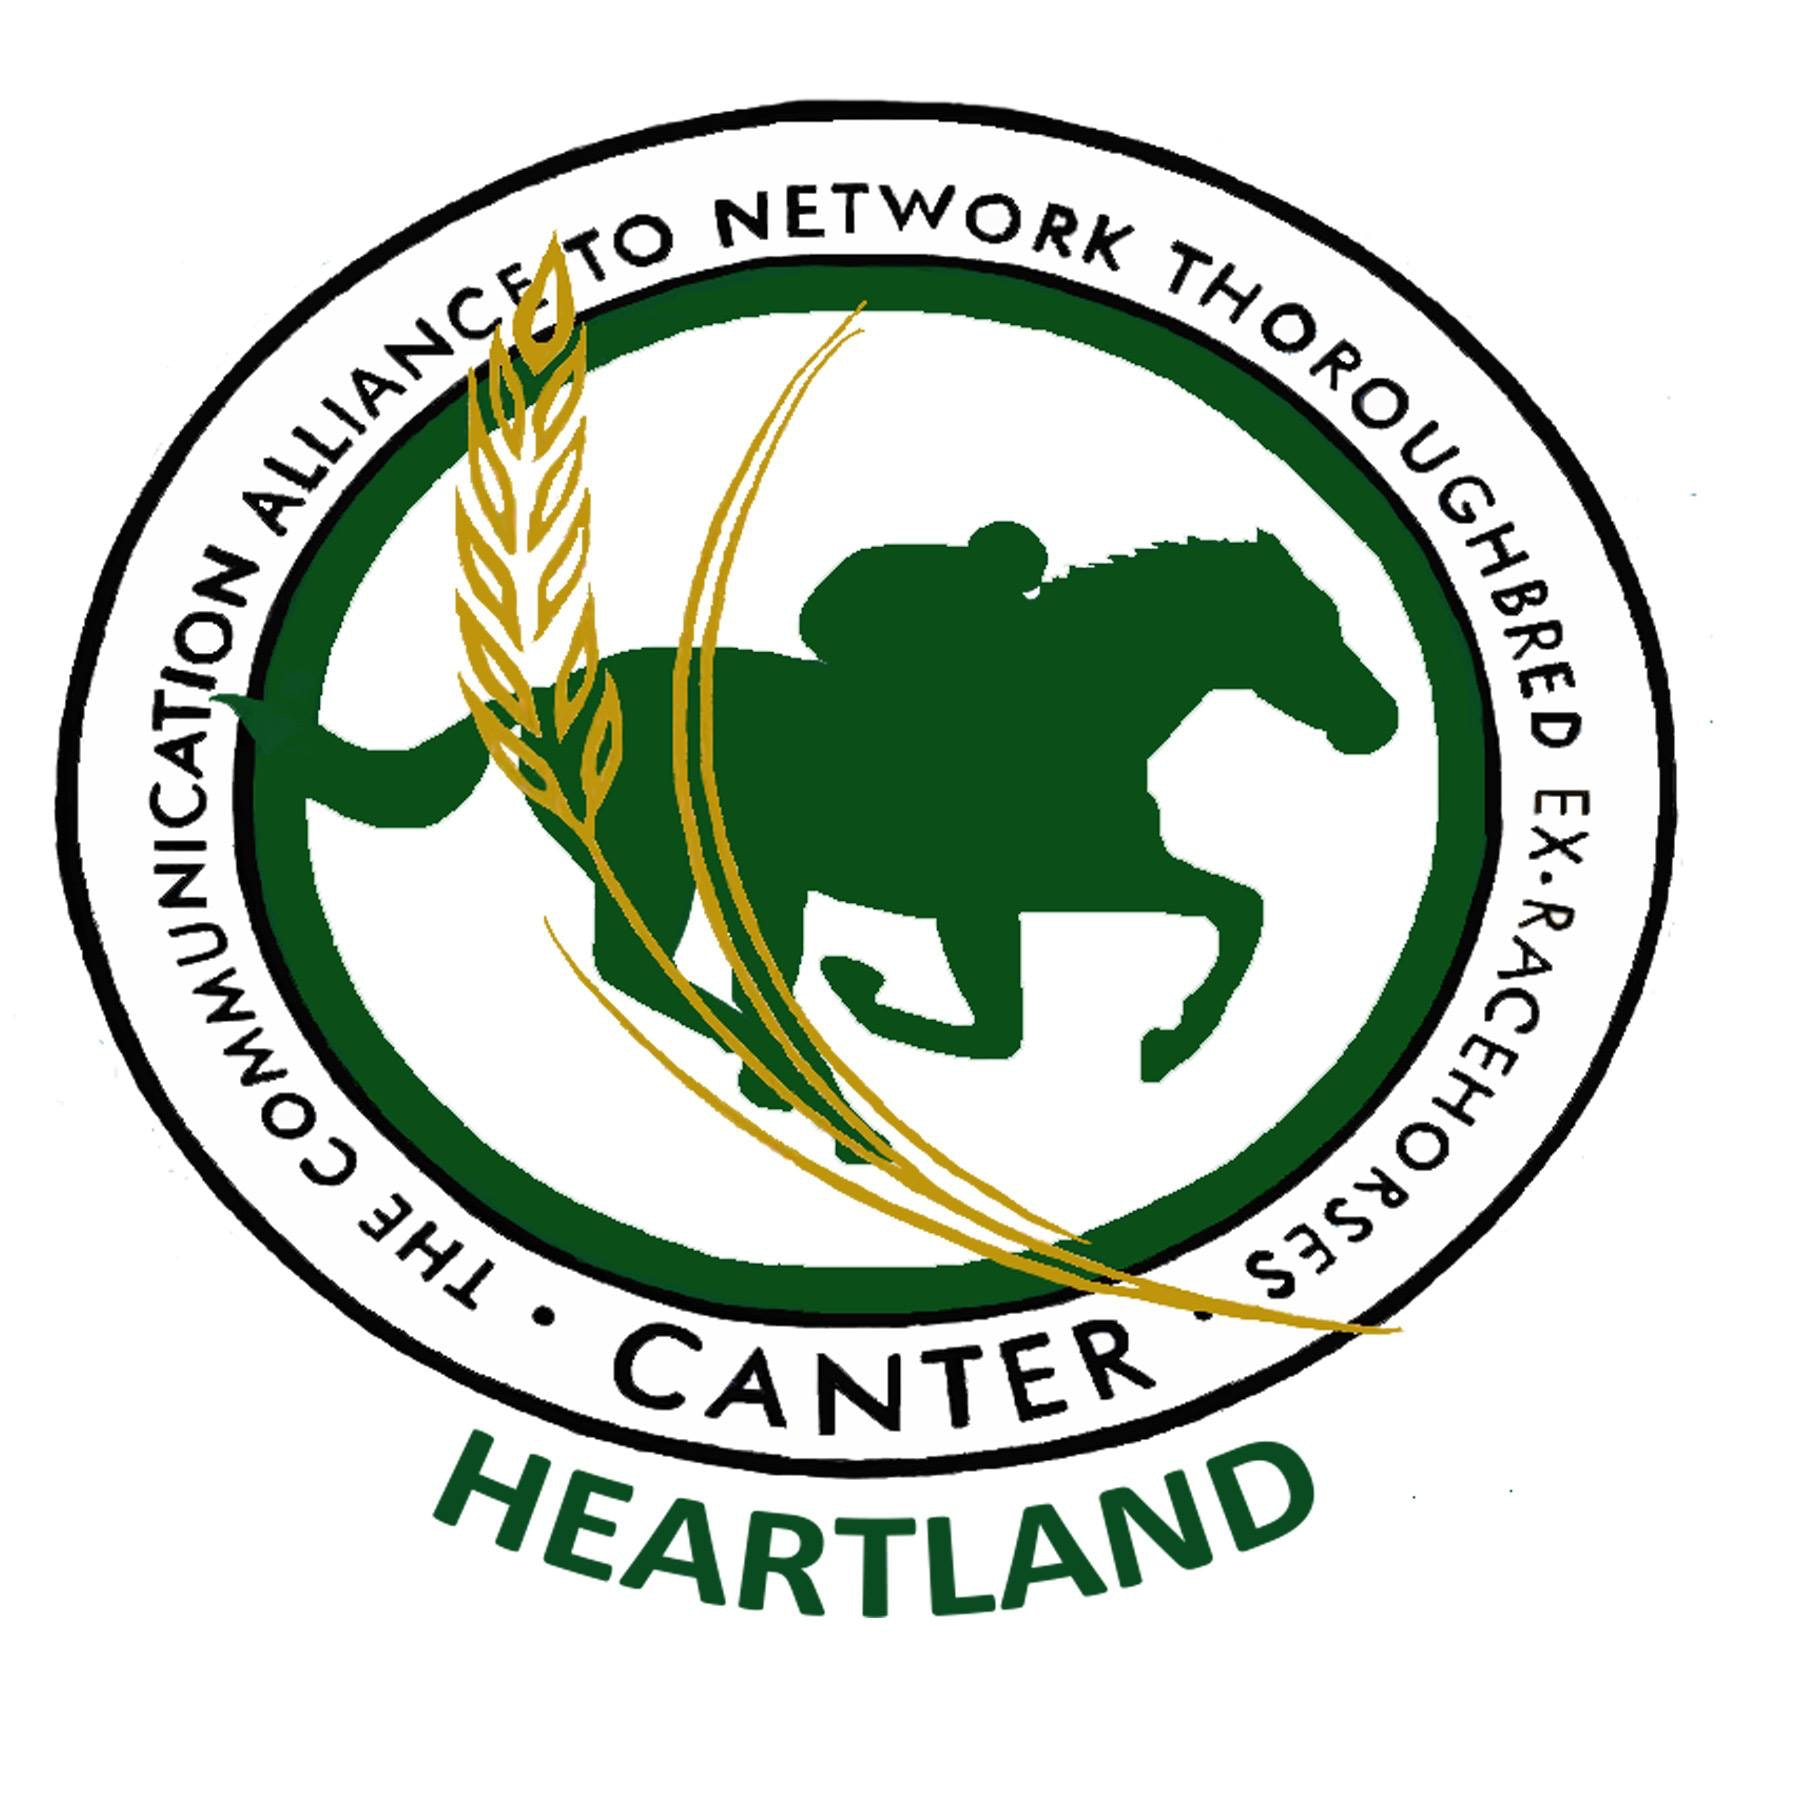 CANTER HEARTLAND